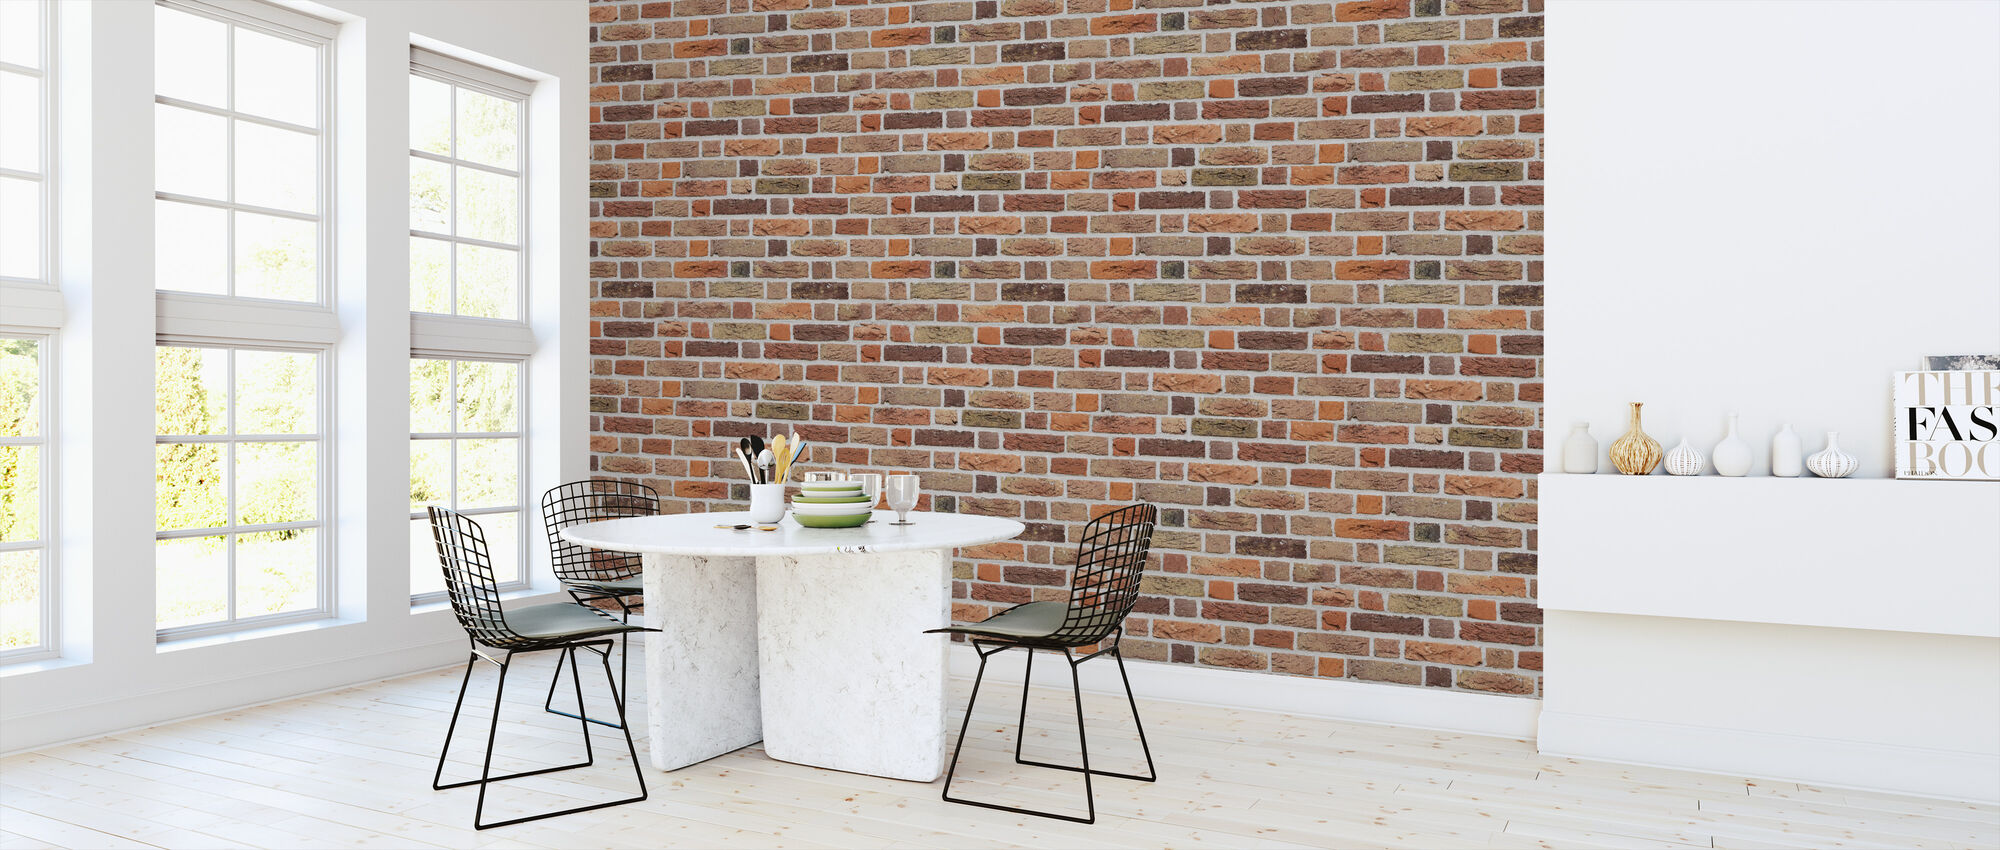 Varied Brick Wall - Wallpaper - Kitchen